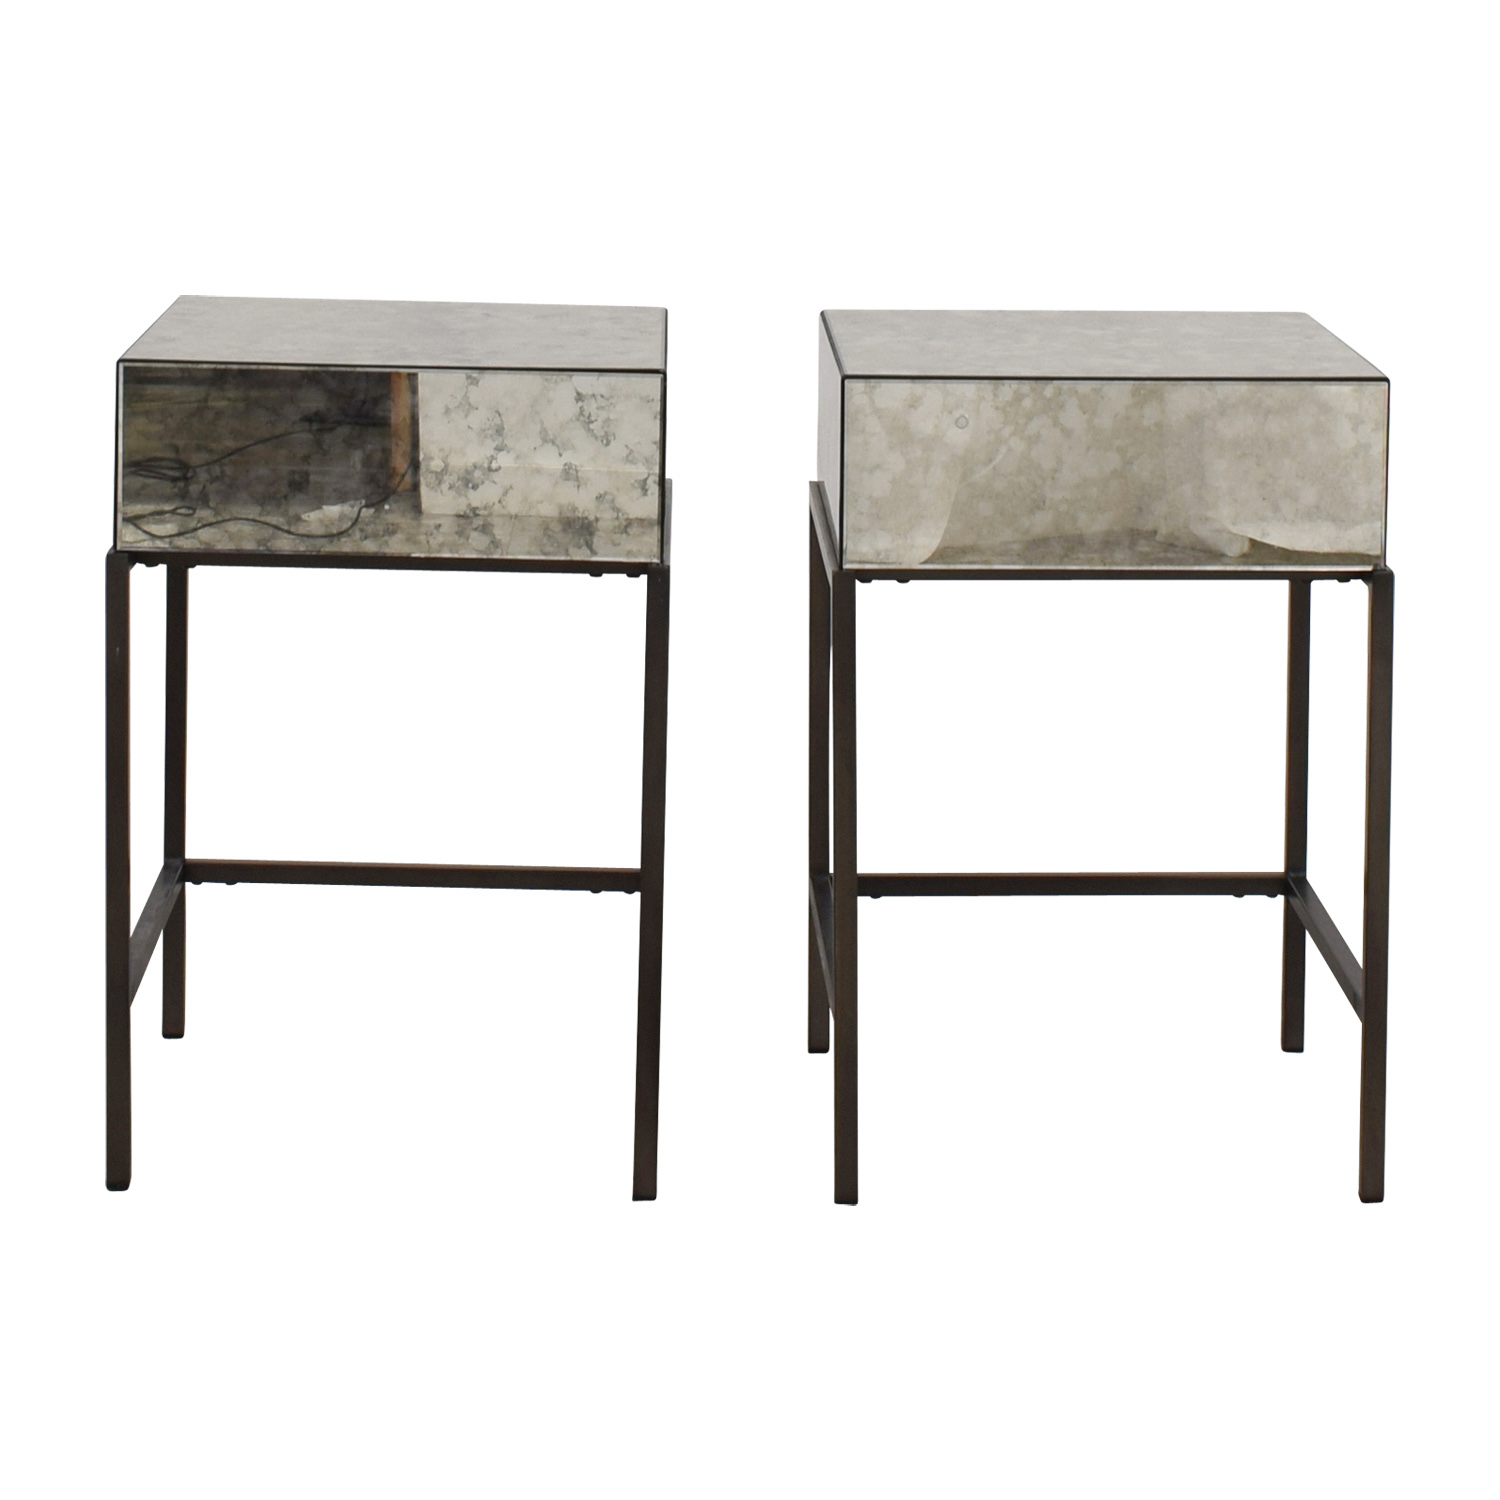 West Elm Foxed Mirror Single Drawer Nightstands